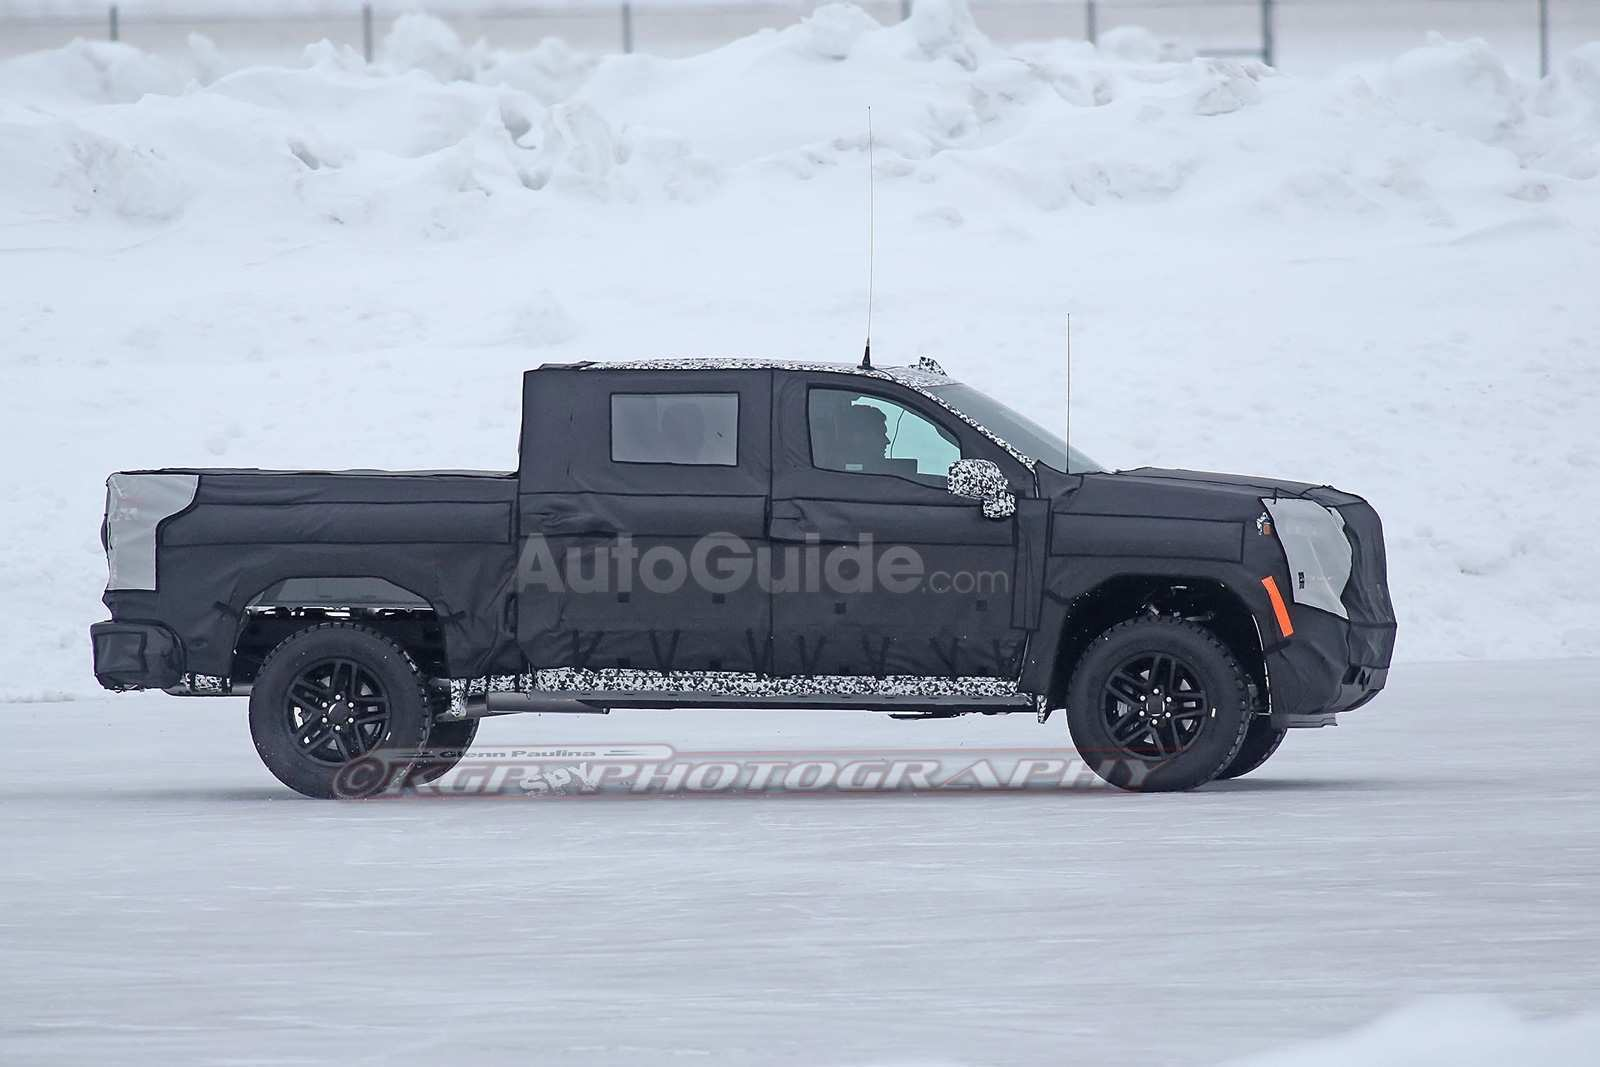 65 Gallery of 2019 Chevrolet Silverado Spy Photos Interior with 2019 Chevrolet Silverado Spy Photos